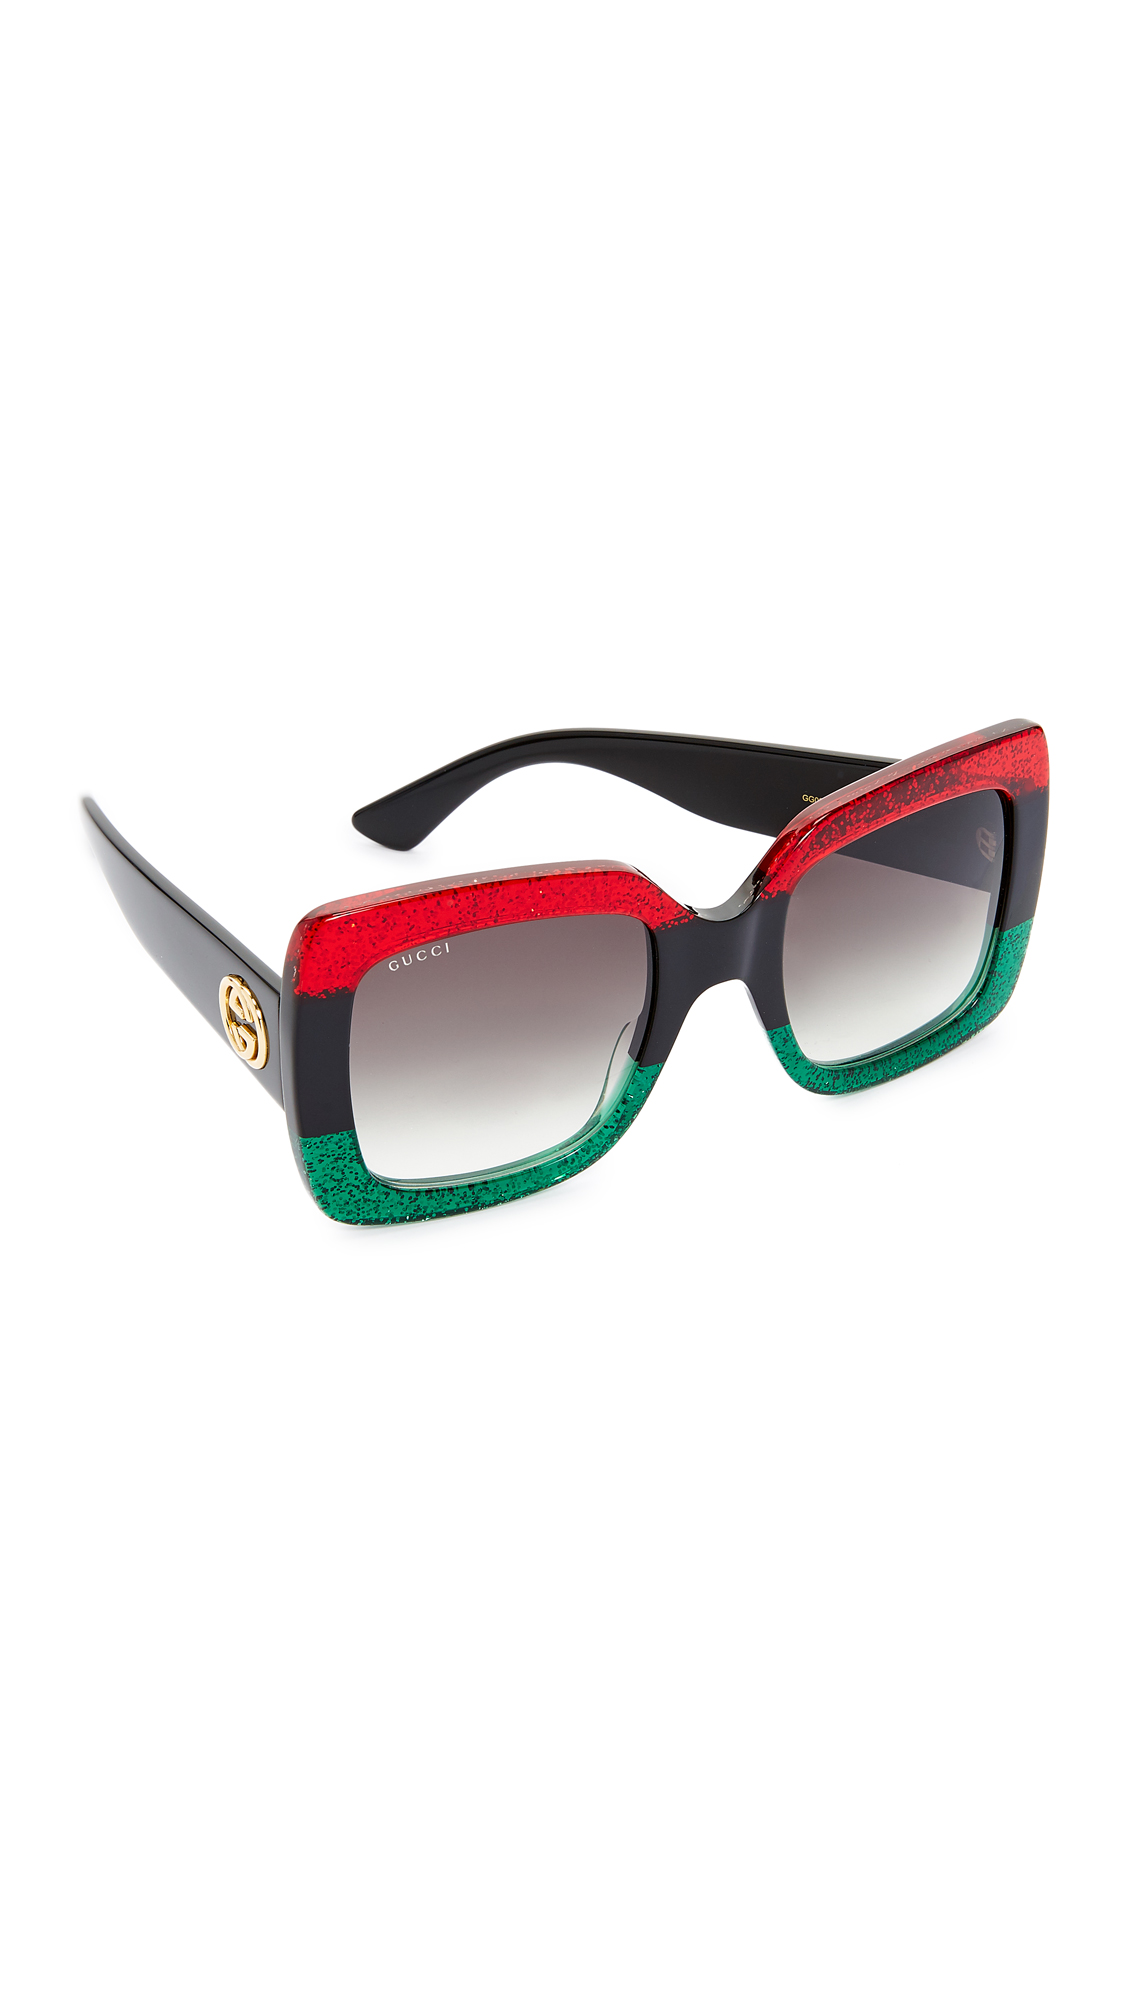 00fb187a21f Gucci Square Urban Web Block Sunglasses